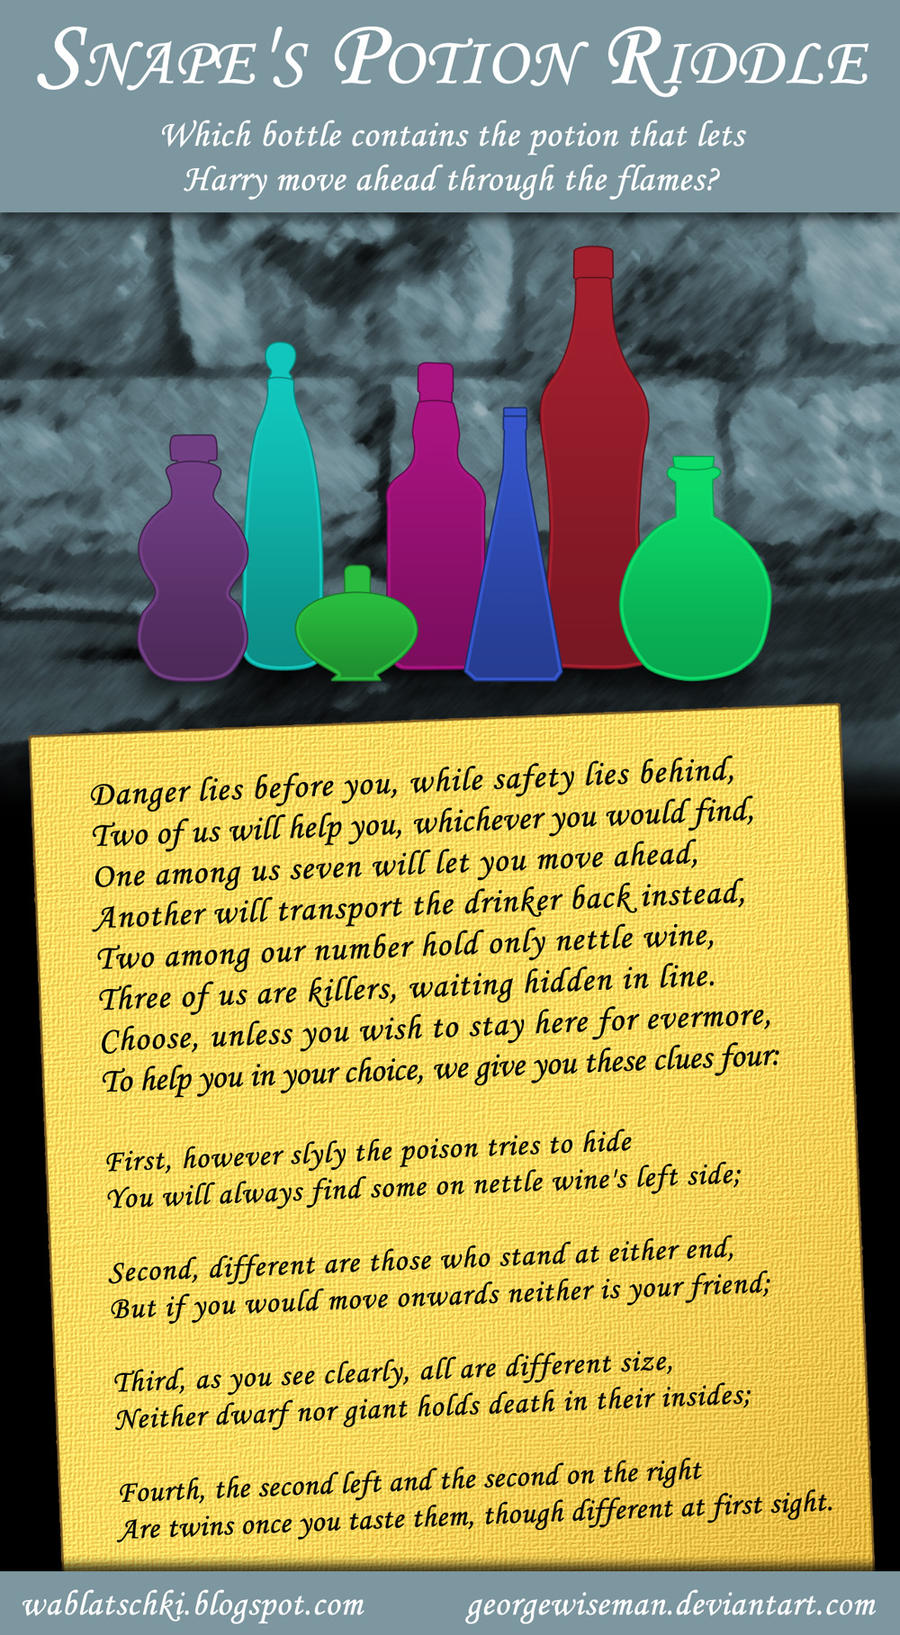 Snape's Potion Riddle by GeorgeWiseman